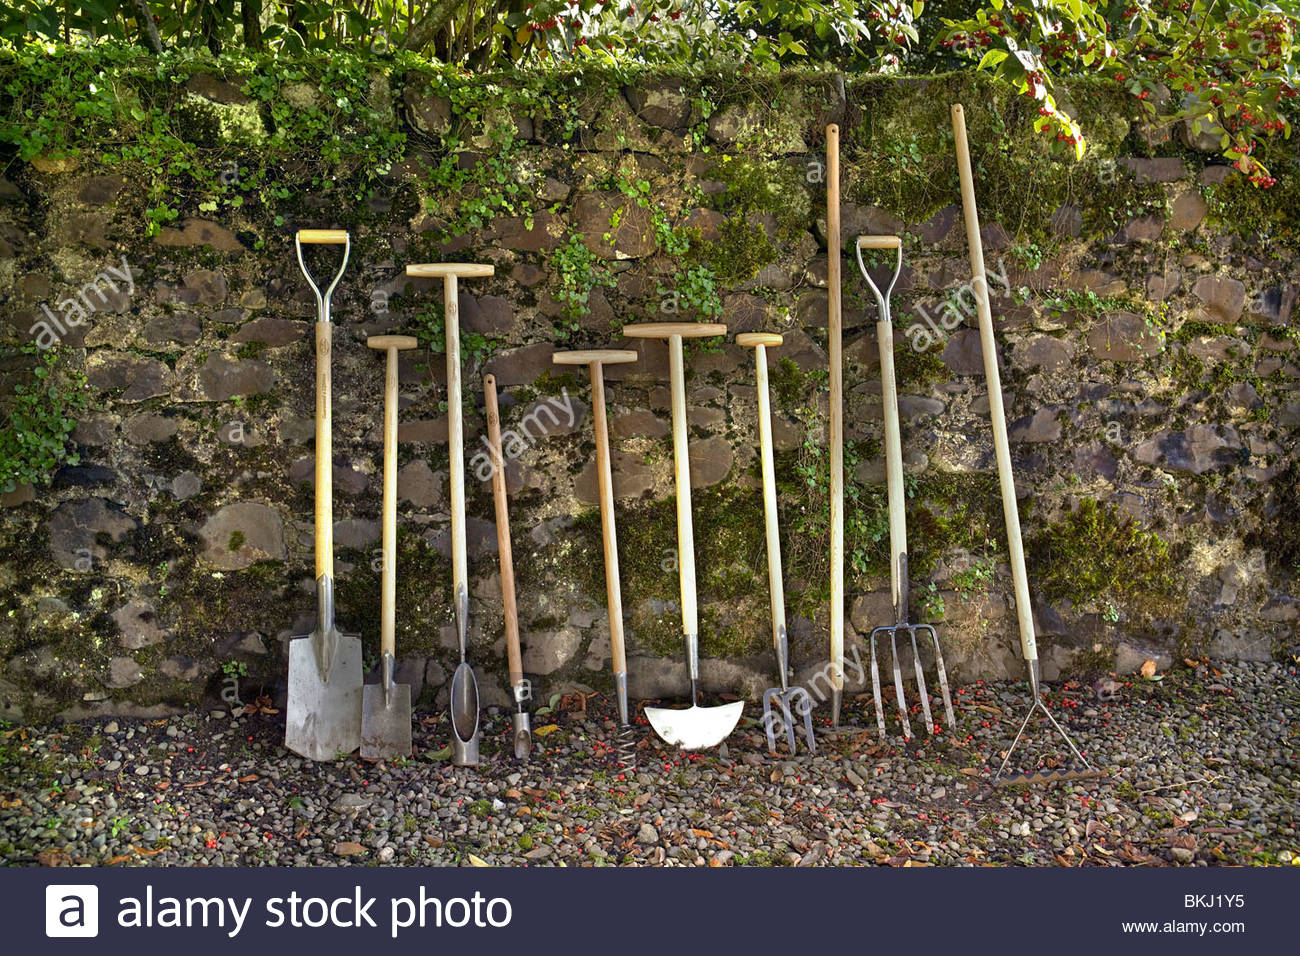 Line Up Of De Wit Garden Tools Against A Stone Wall Stock Photo